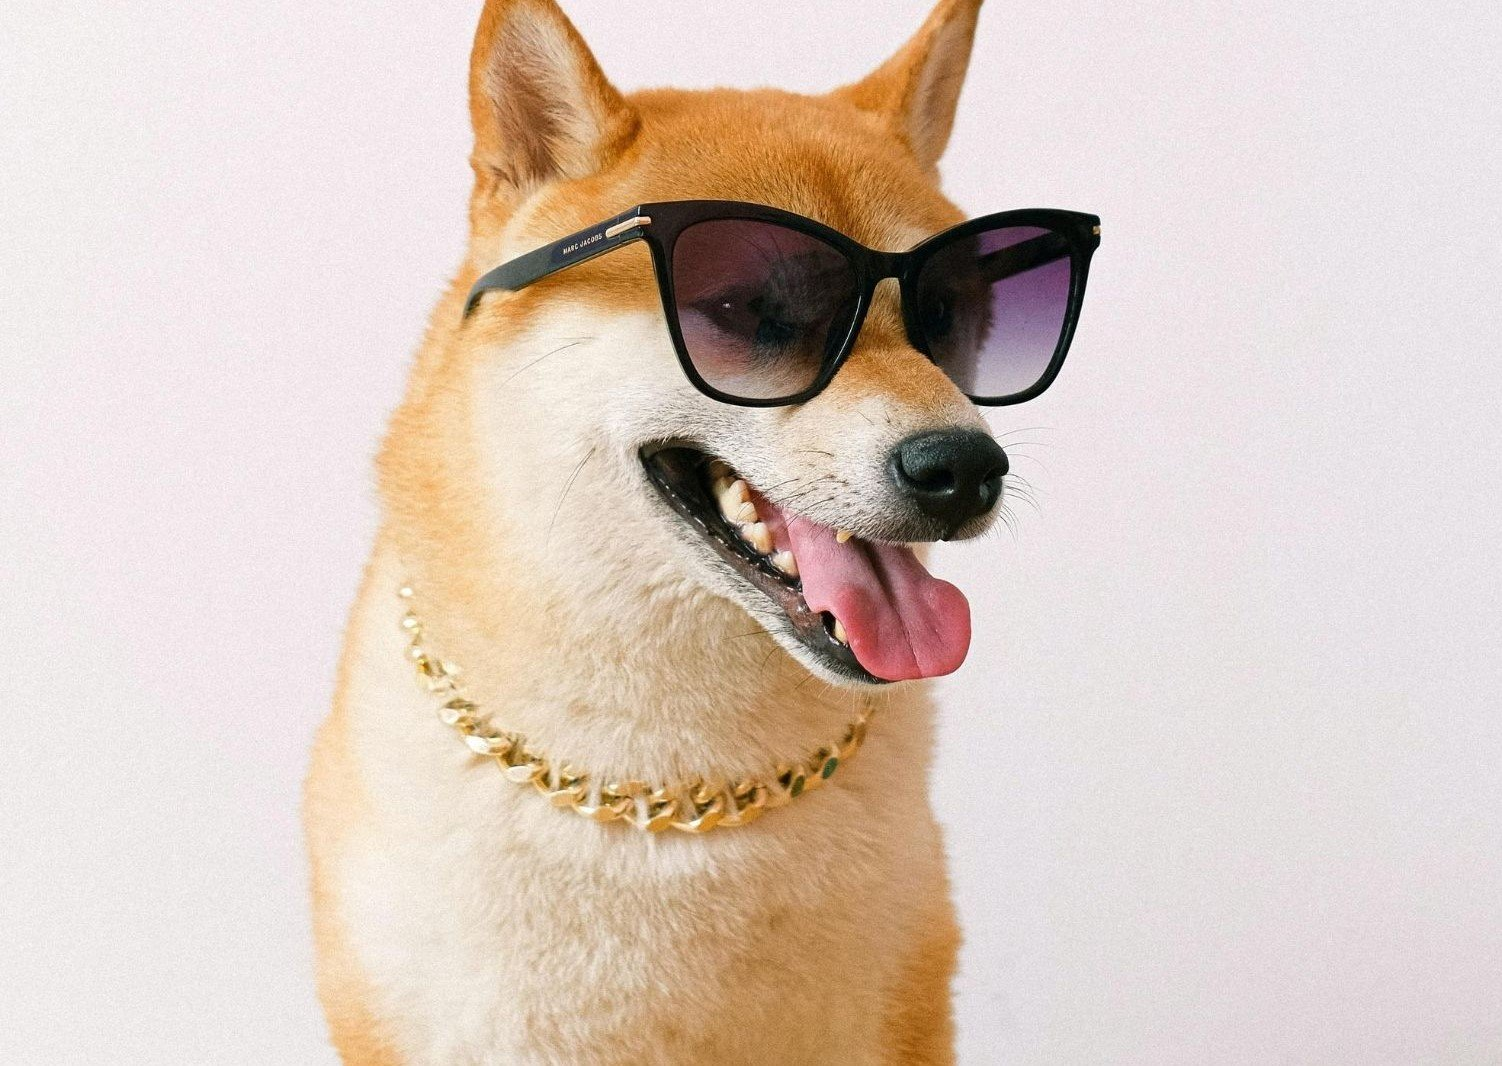 Shiba Inu wearing sun glasses with golden necklace